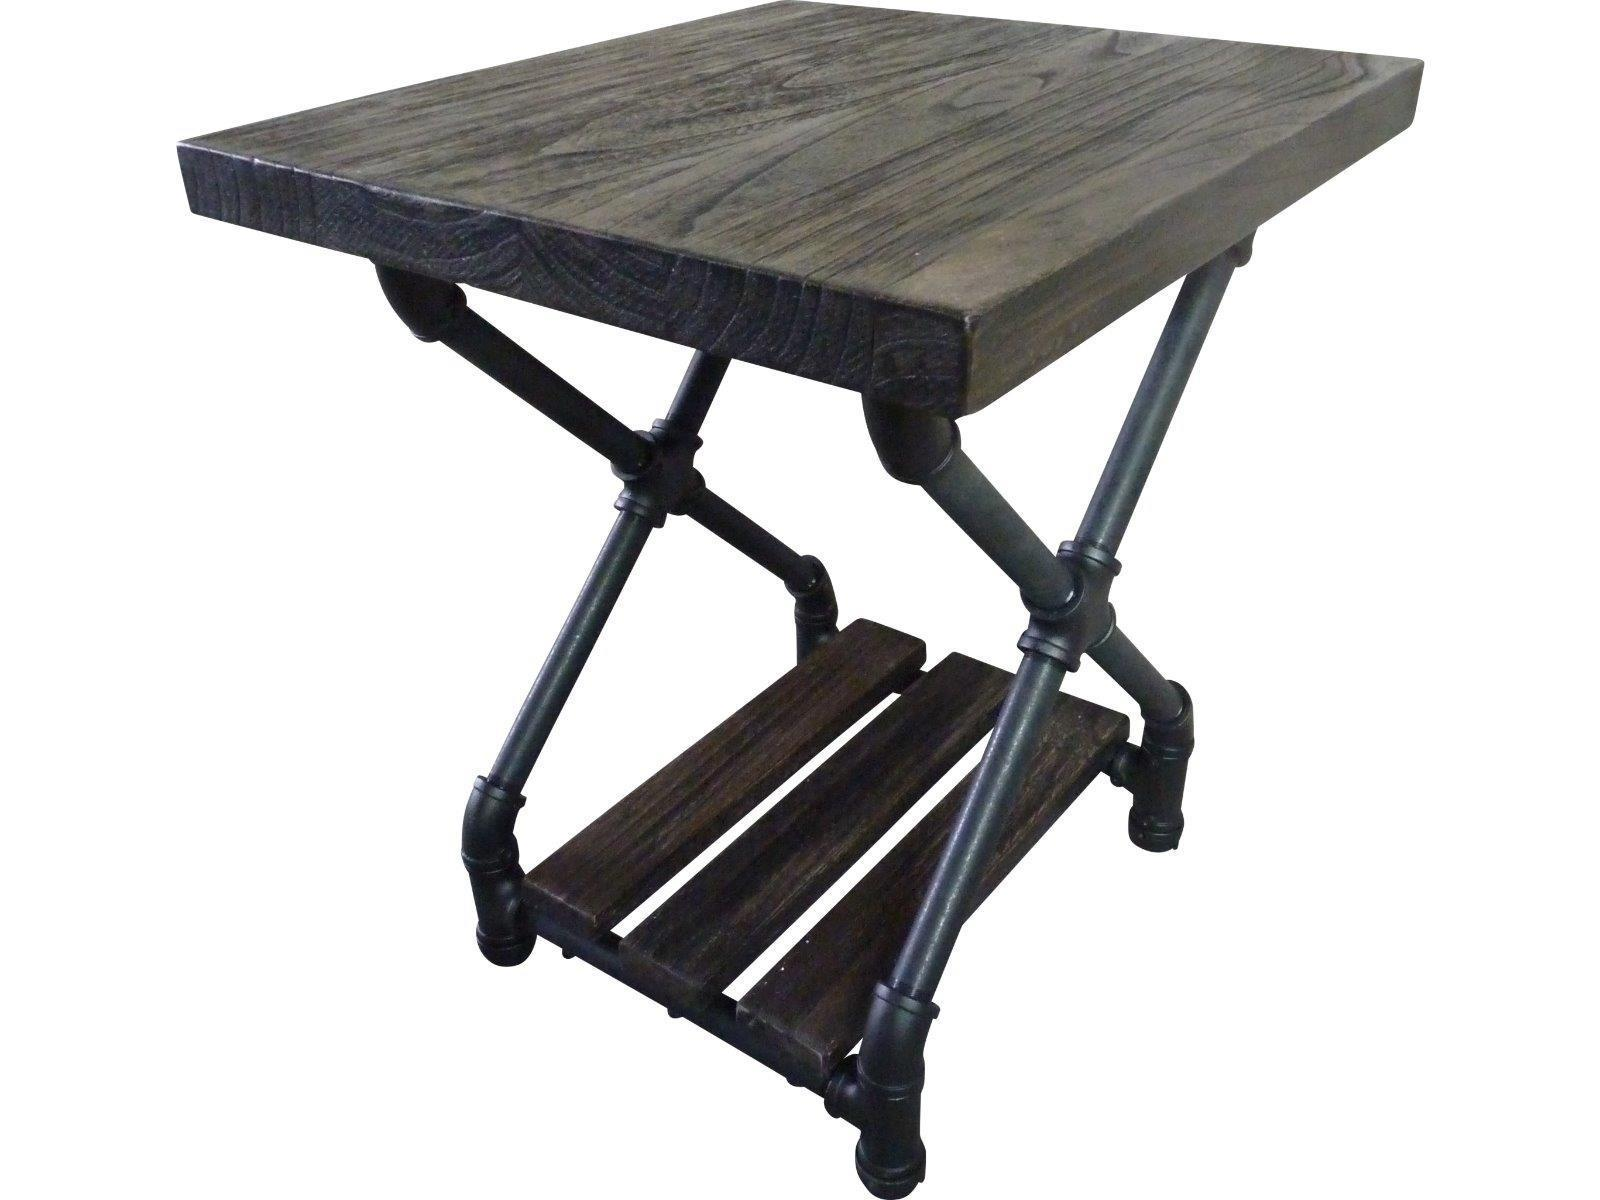 Modern Industrial Chic Side Table